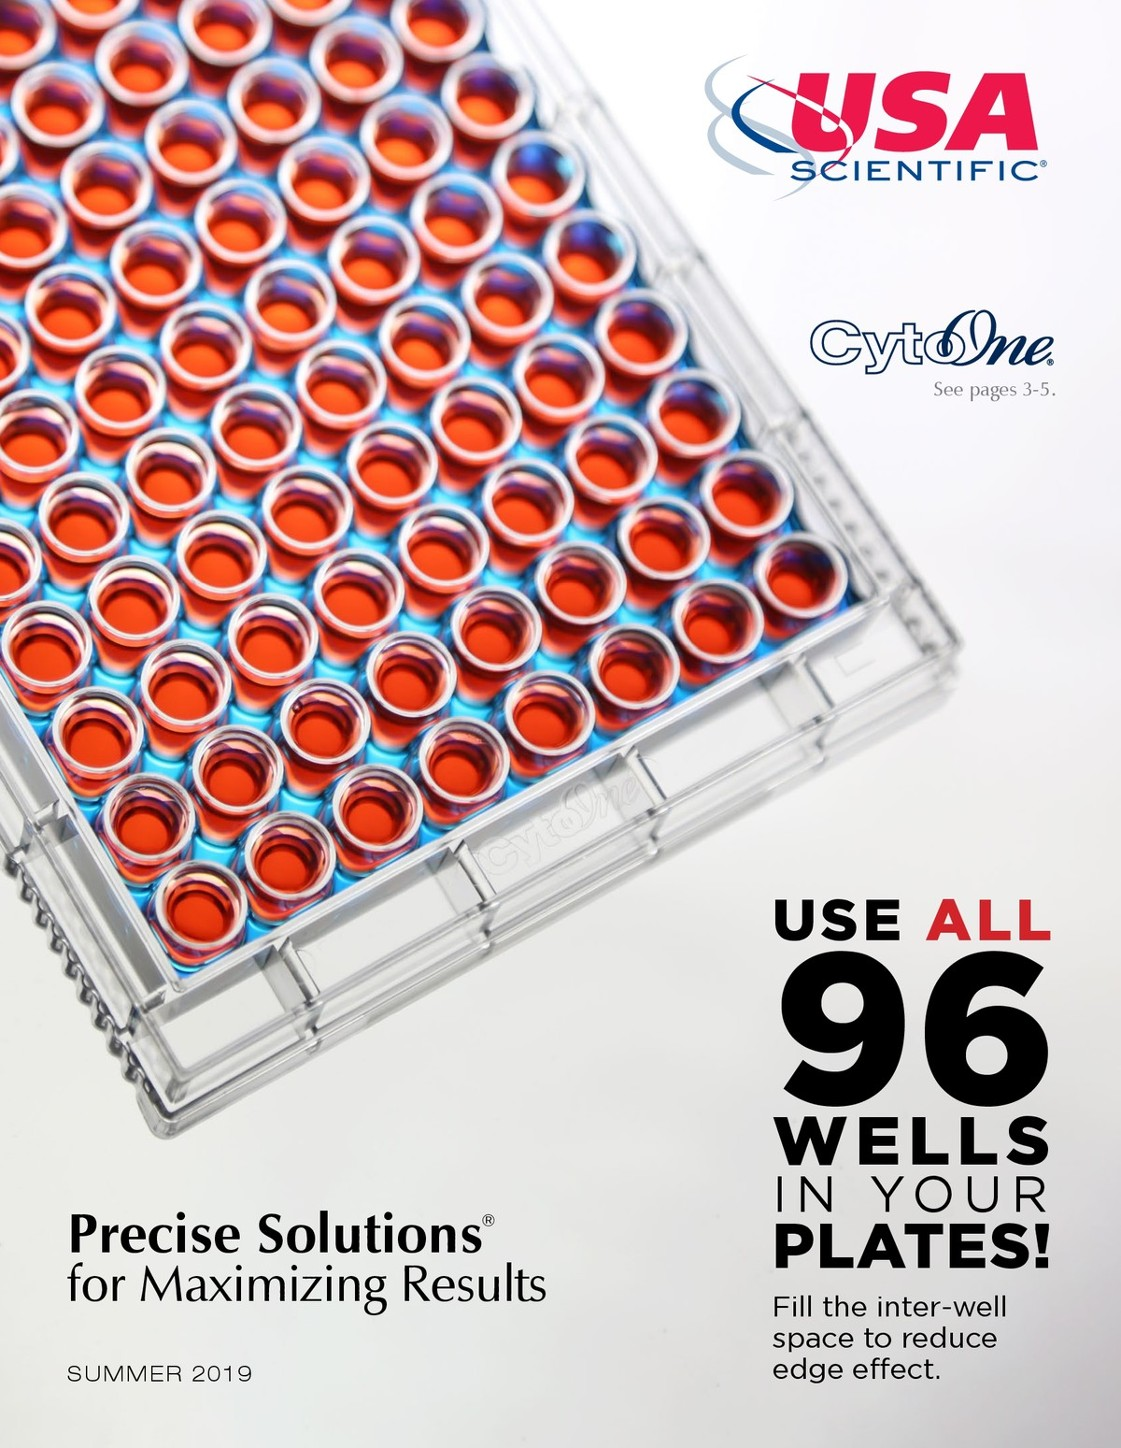 Save on Lab Supplies and Equipment with Biotec Times from